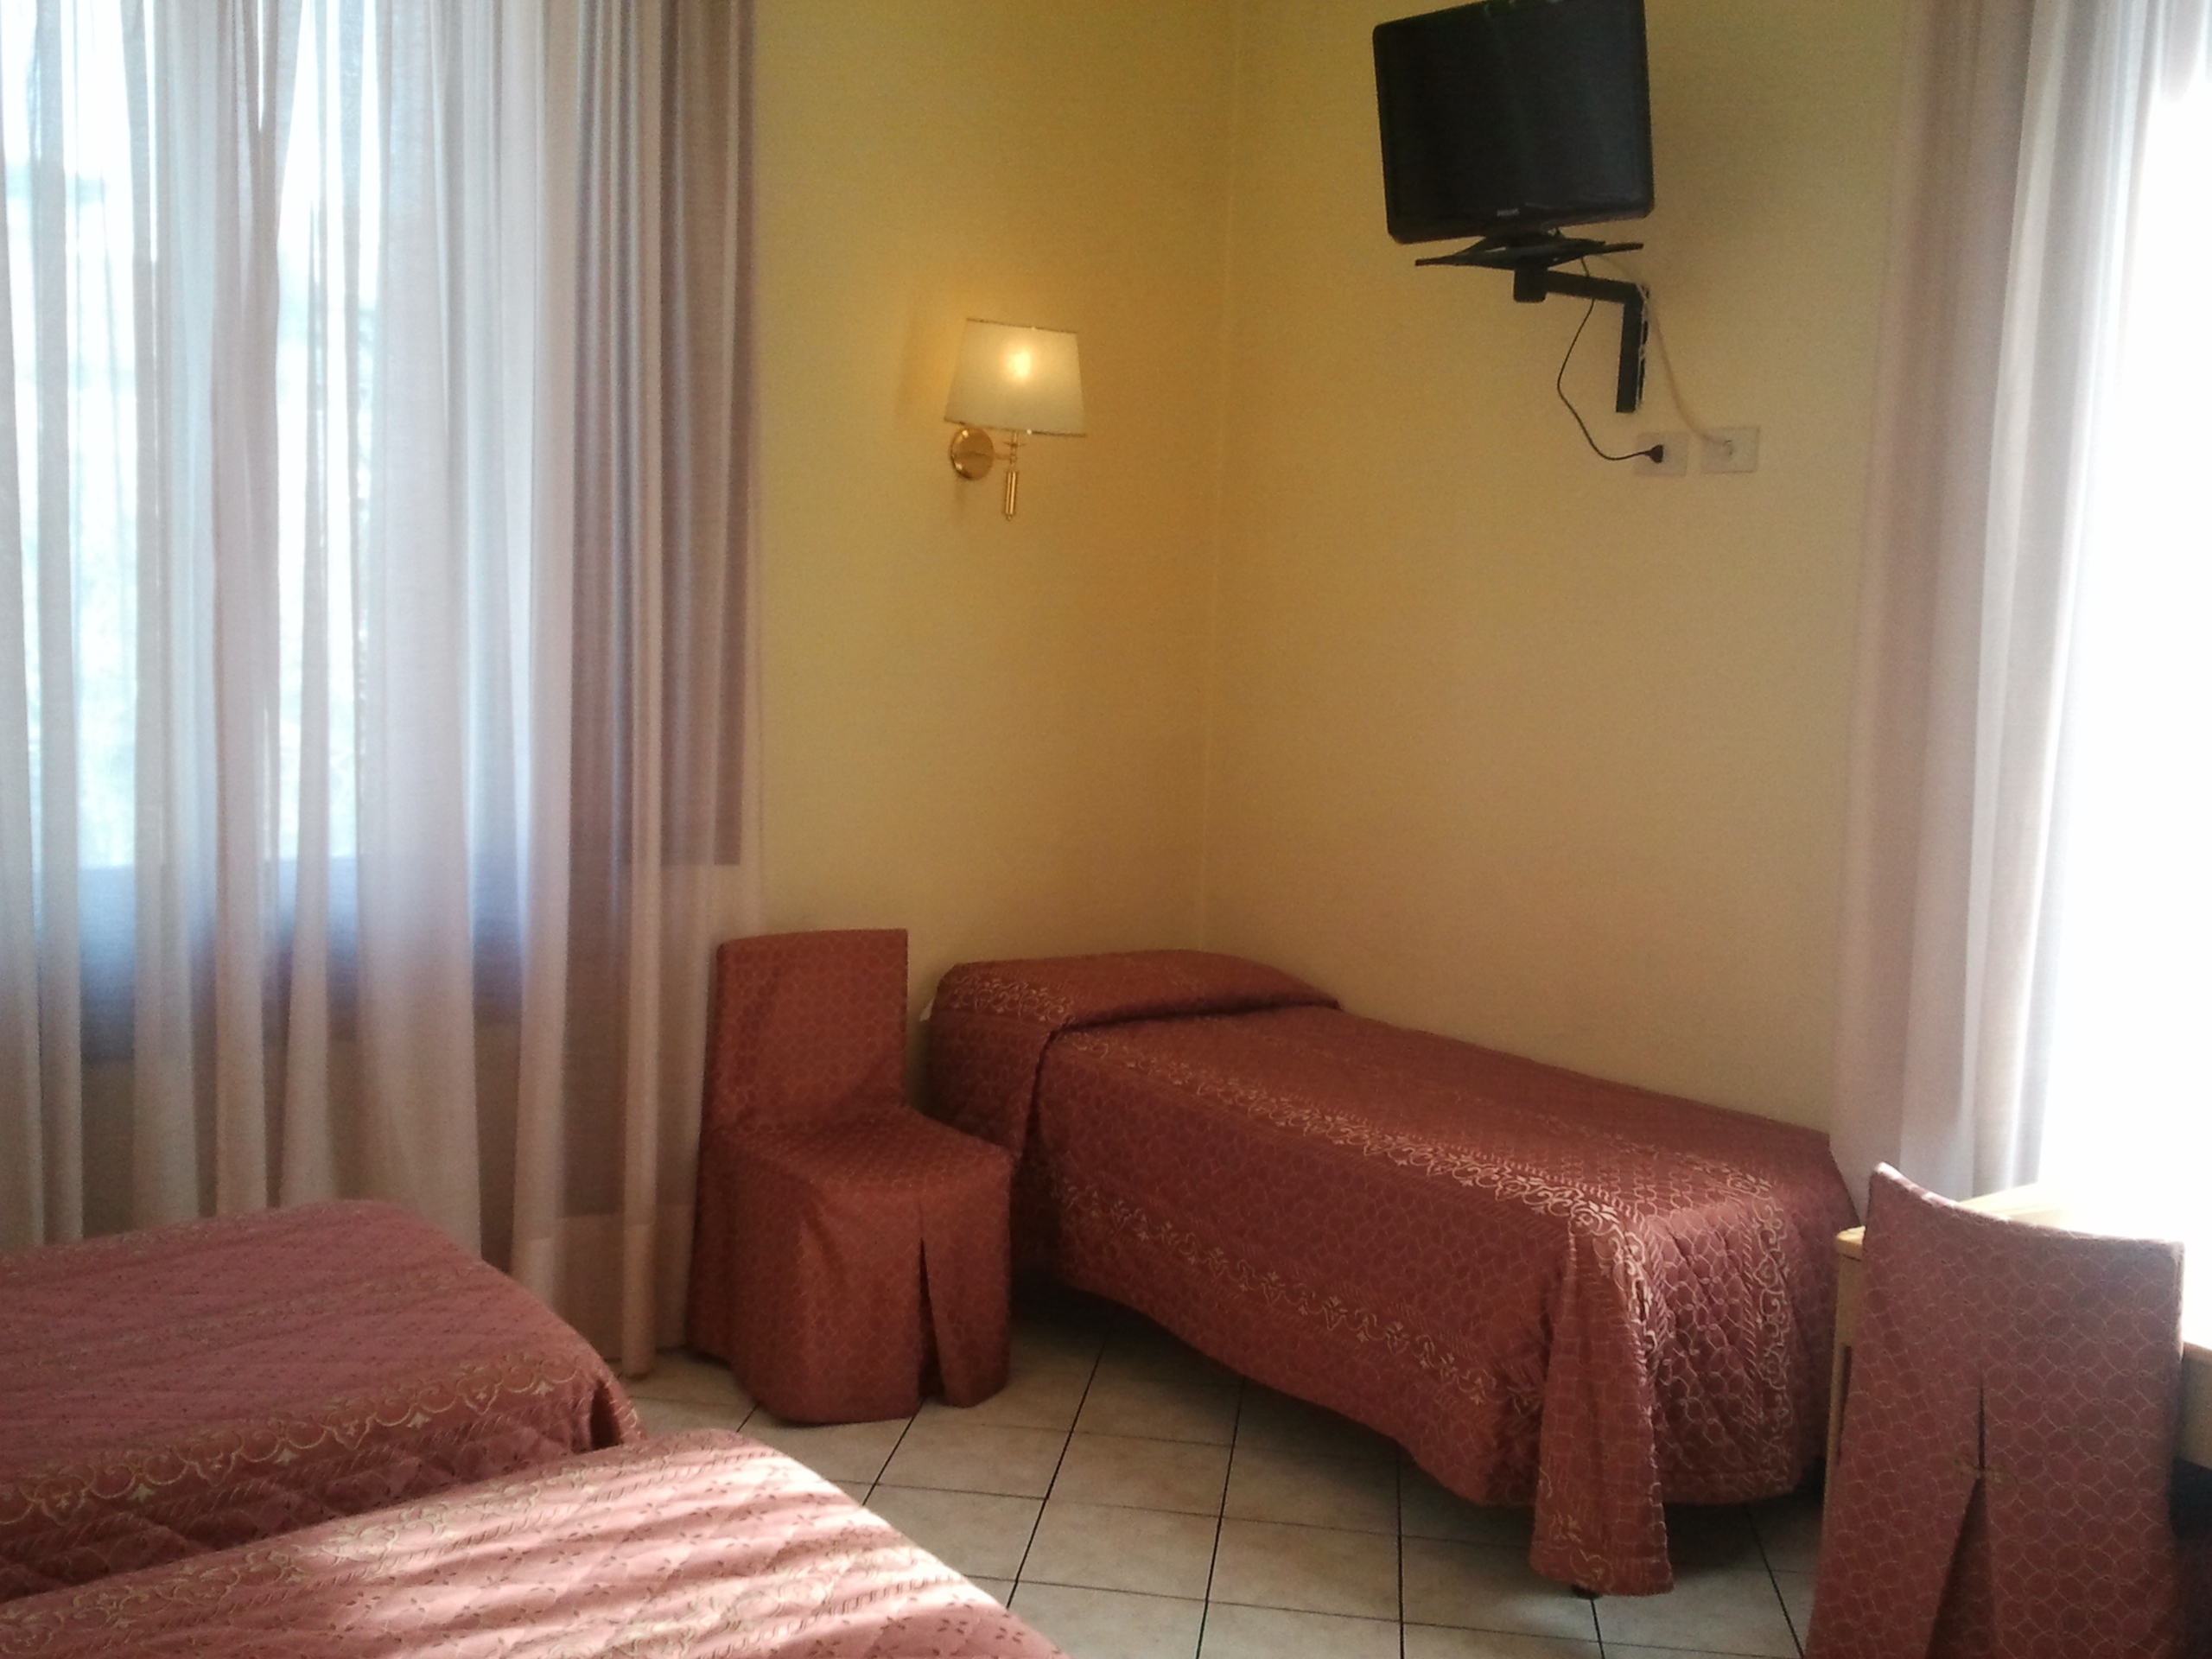 Florence accommodations - cheap triple rooms at Hotel Bijou in Florence city center